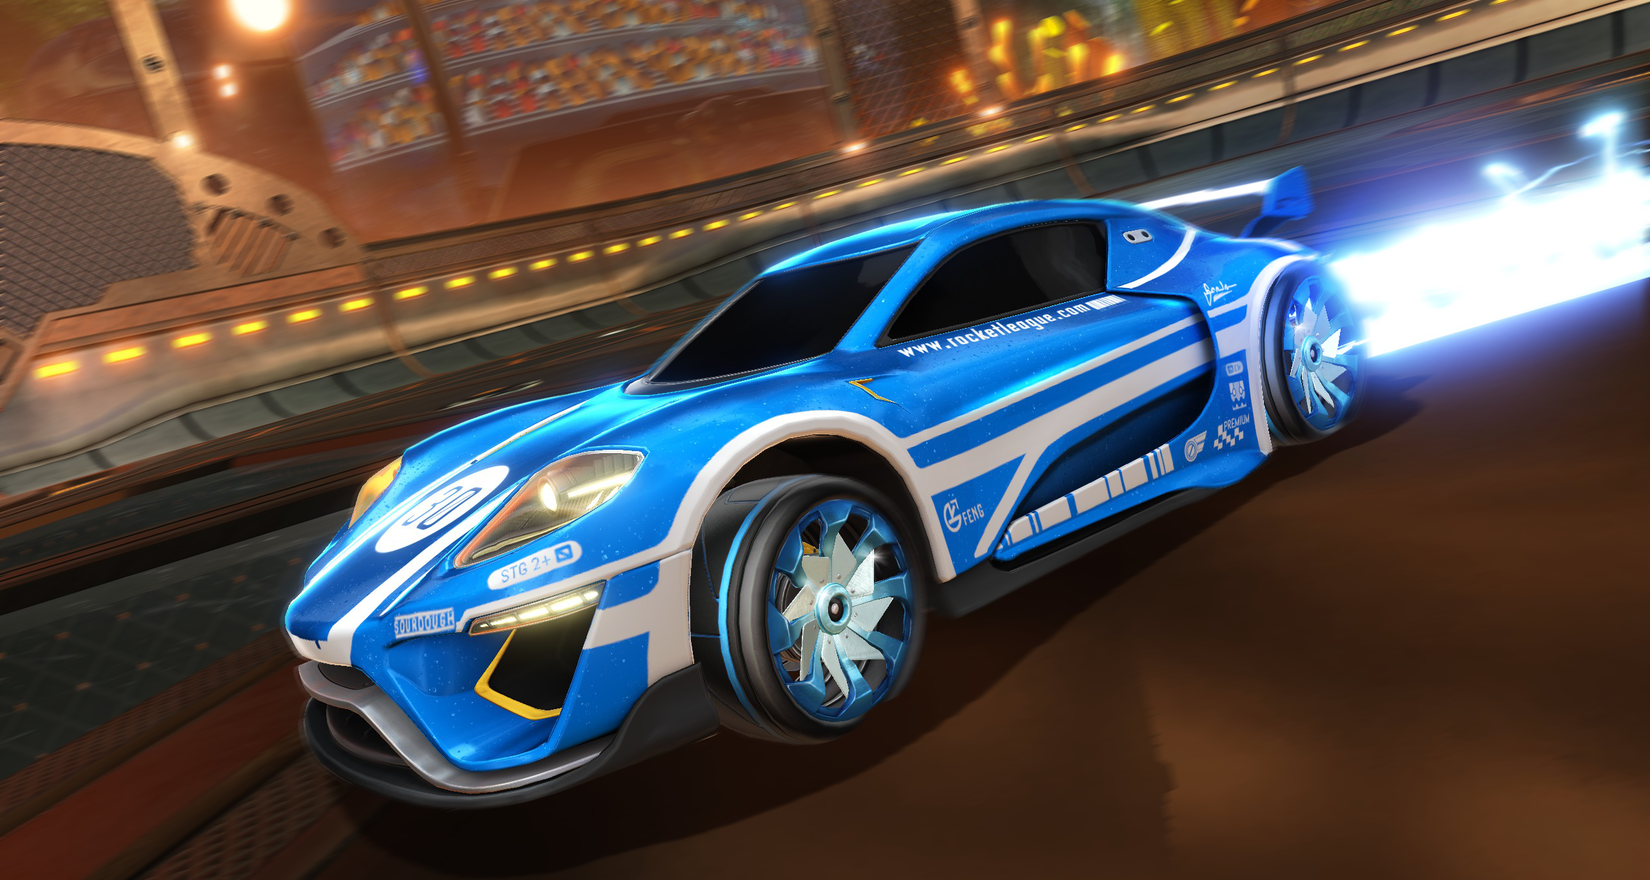 Exclusive Item for RLCS Season 4 Attendees! Image